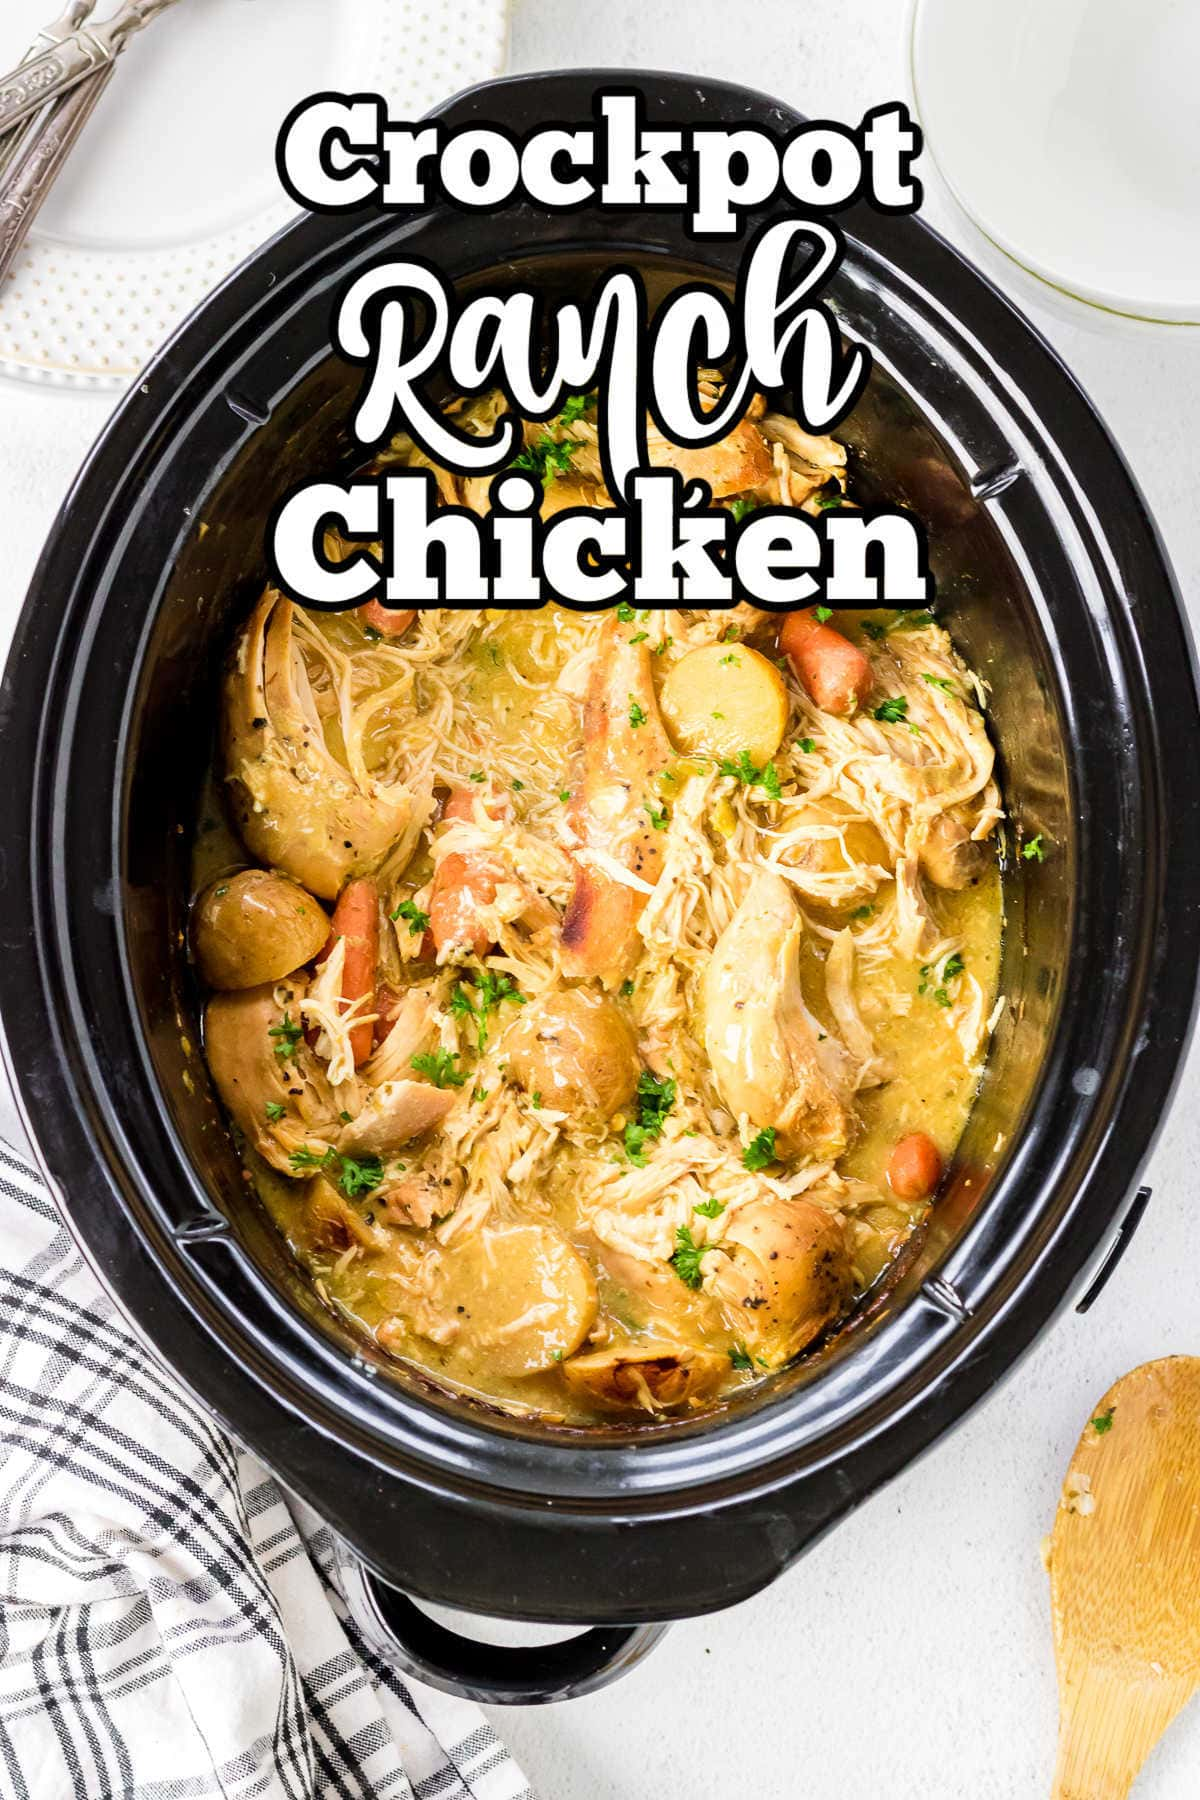 Overhead view of a crockpot with chicken, gravy, and potatoes in it.